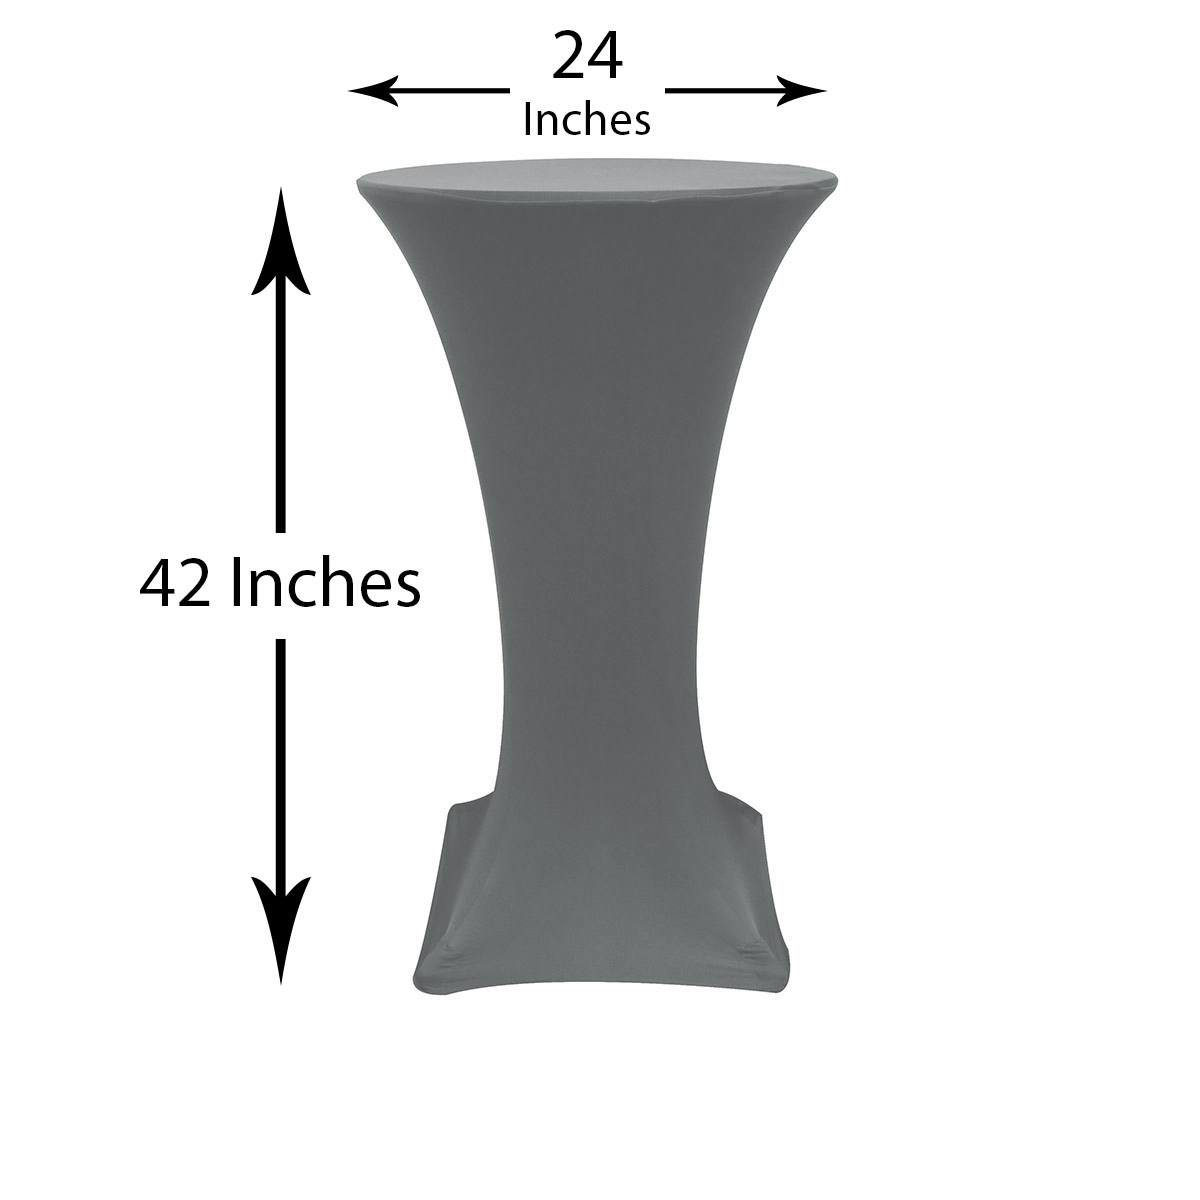 24-inch-highboy-cocktail-spandex-table-covers-silver-dimensions.jpg